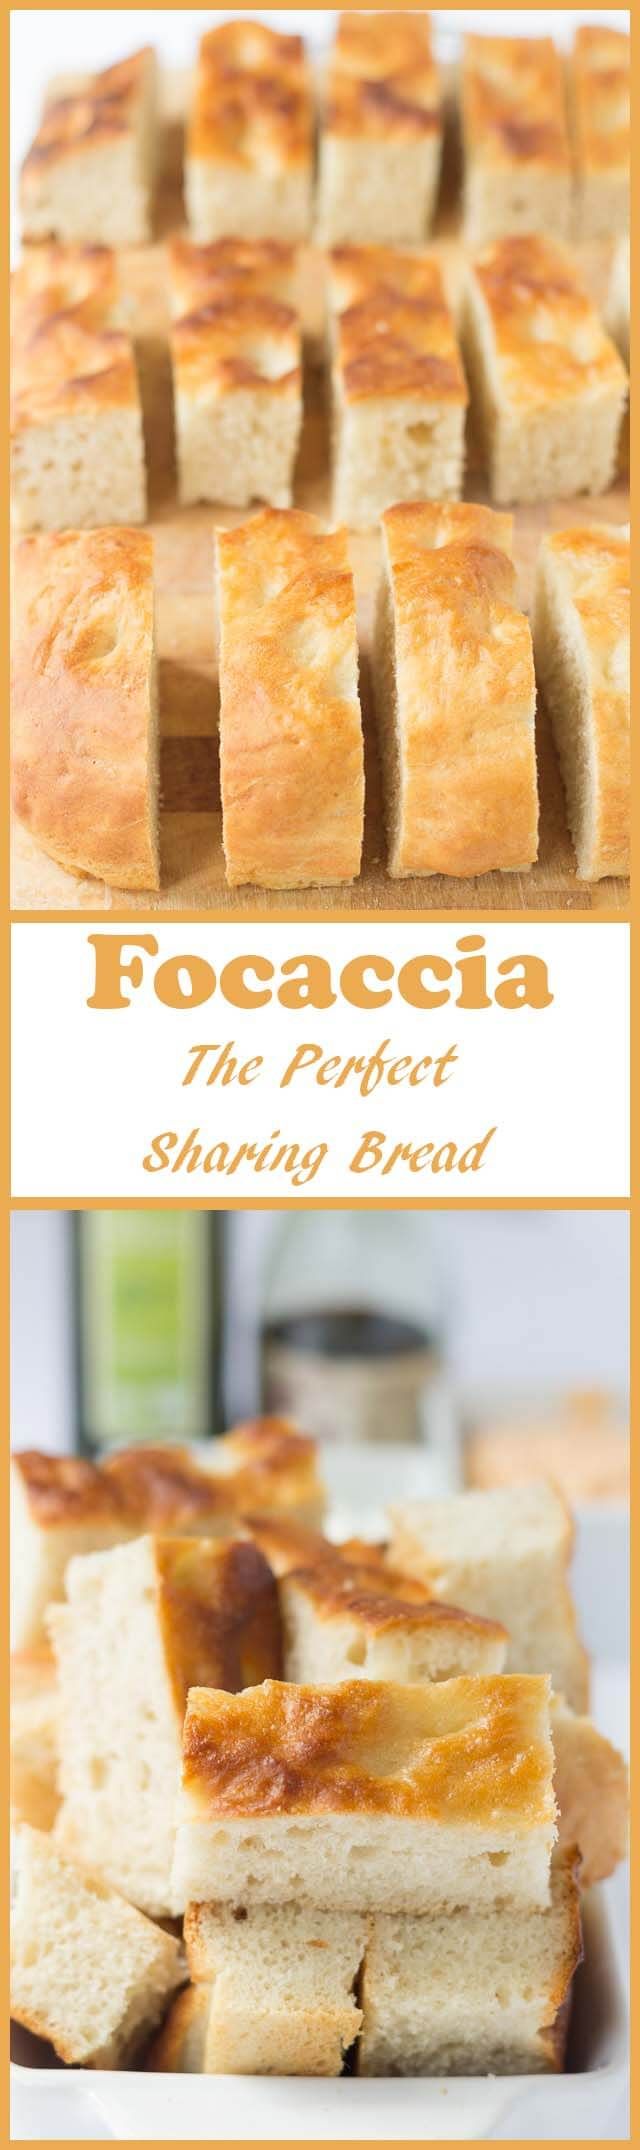 Focaccia is the perfect sharing bread. It's easy to make and this Focaccia recipe shows you just how easy. Perfect for sharing with friends accompanied with oils and dips it's a meal in itself!